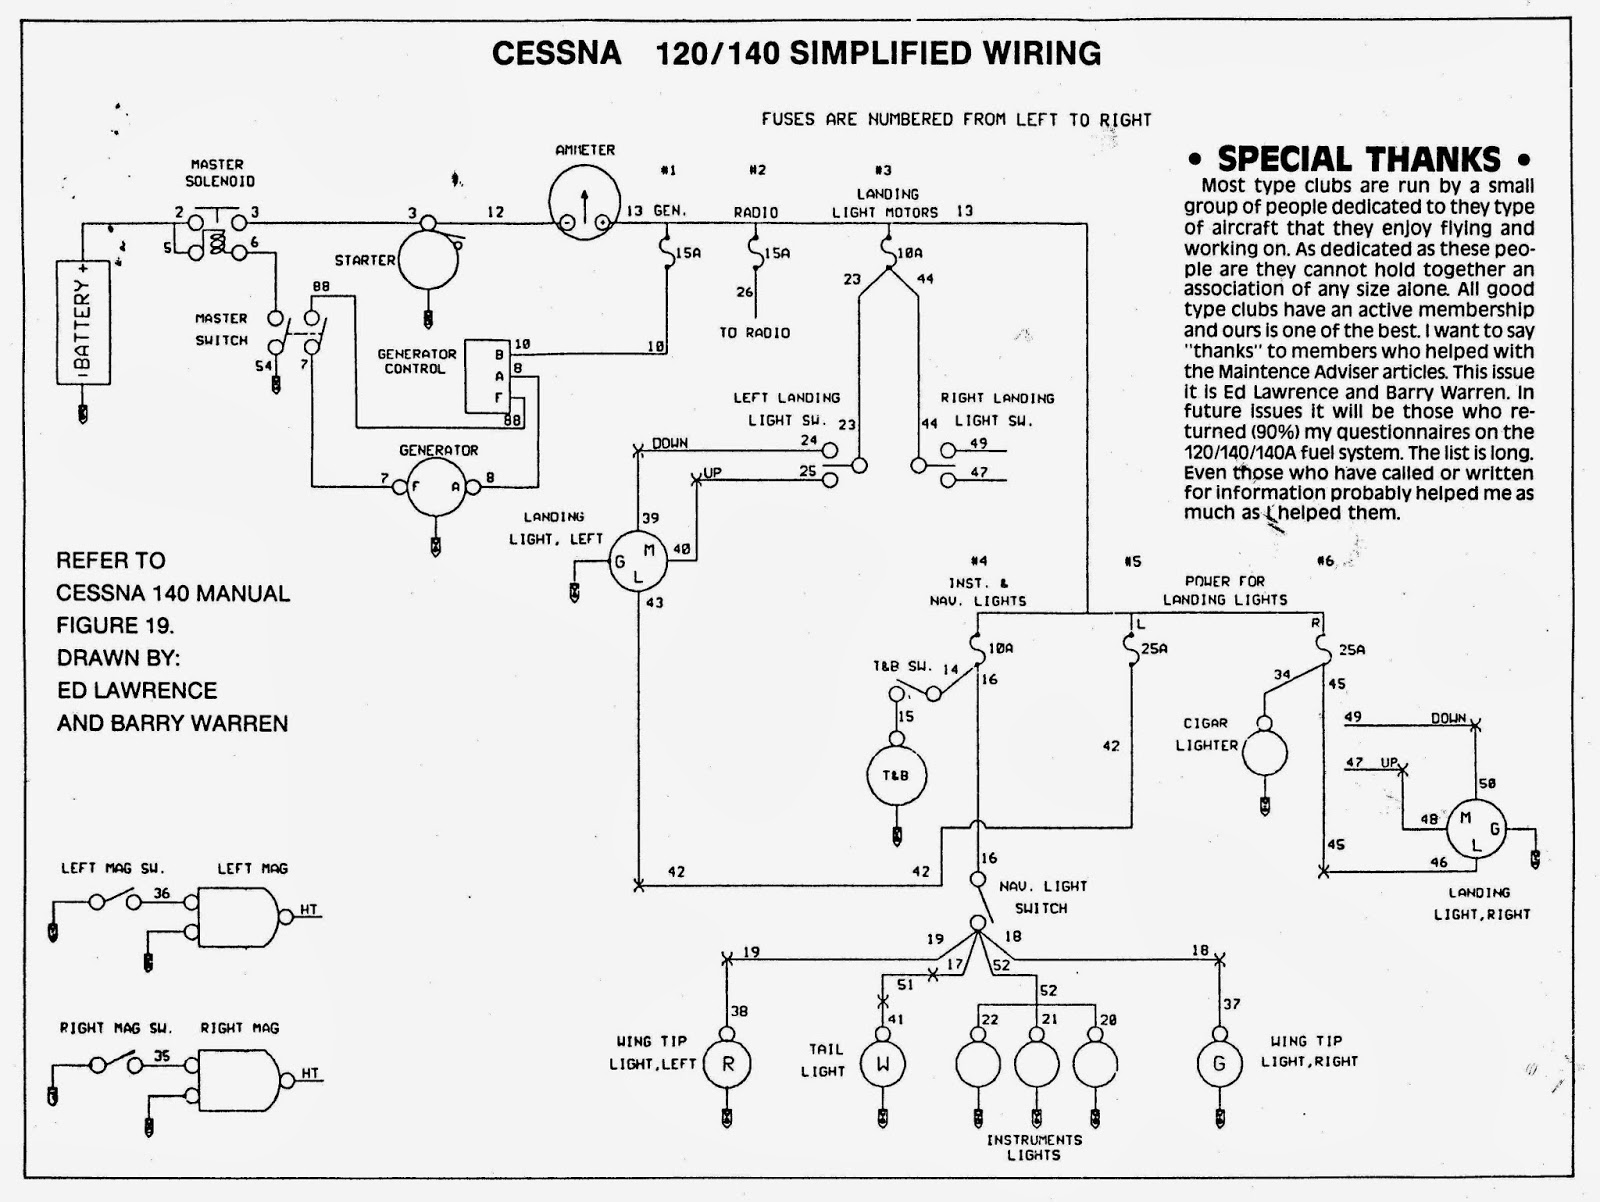 Aircraft Alternator Wiring Diagram Free Picture Ford One Wire Manual Portal Rh 20 11 2 Kaminari Music De Experimental Automotive